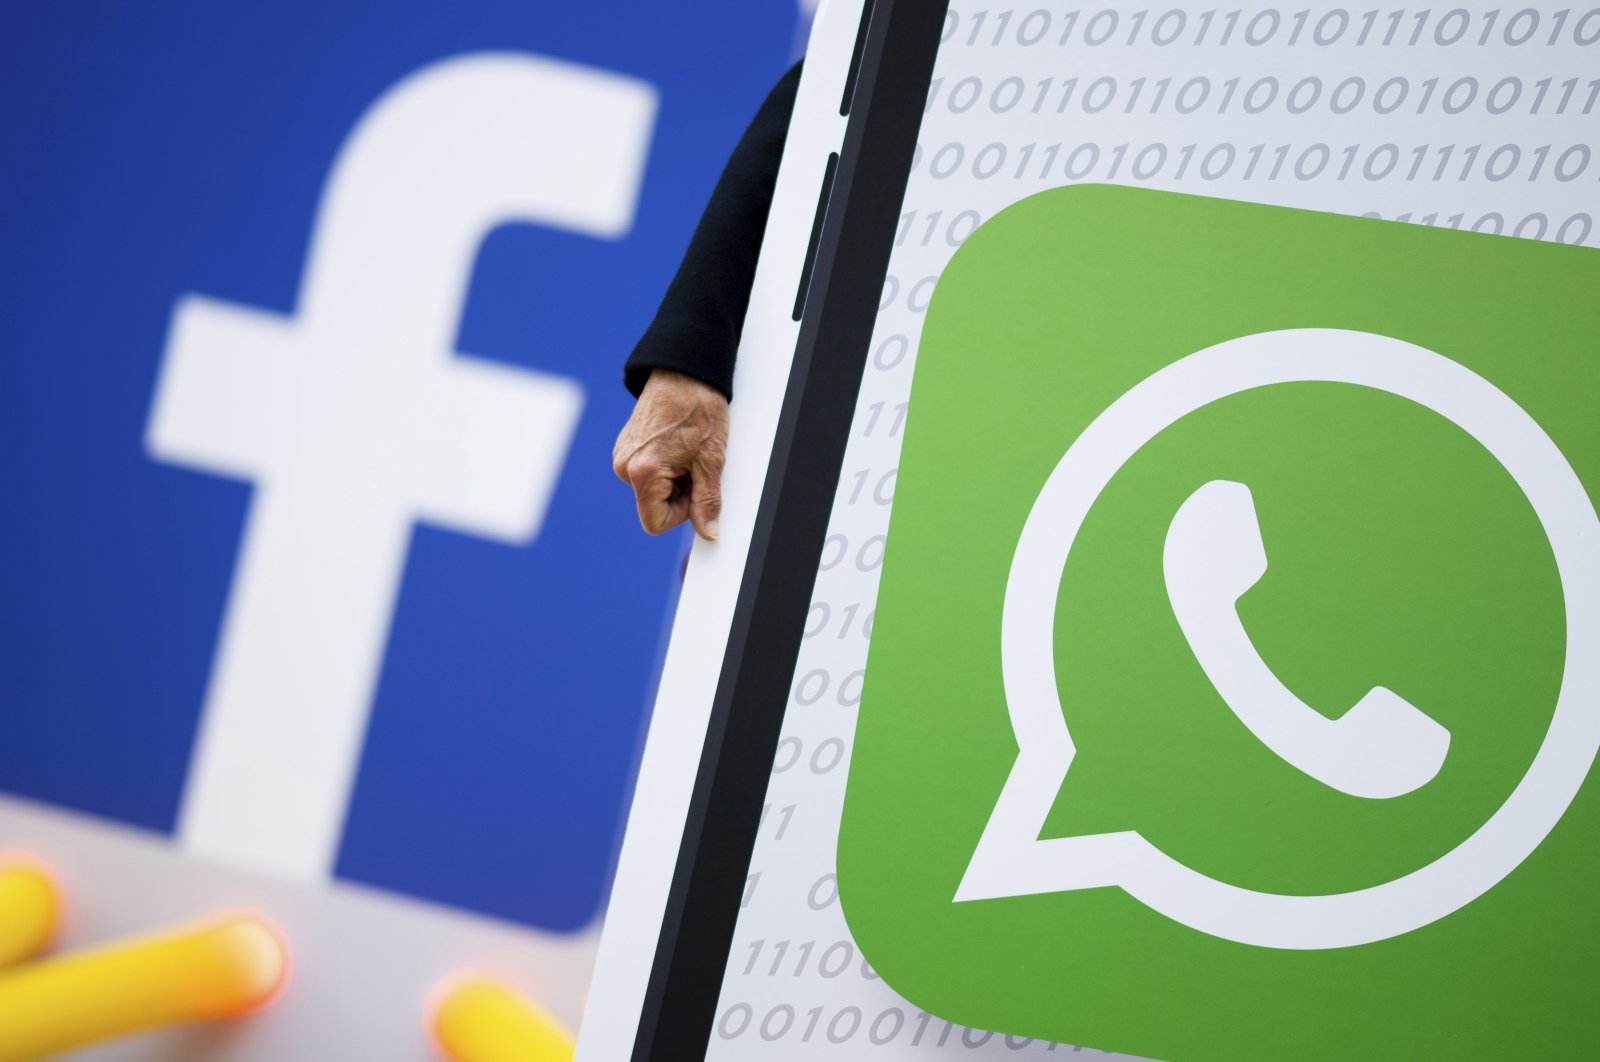 """Activists of the campaign network Campact demonstrate against new terms of use of the communication app """"WhatsApp"""" in front of the Hamburg HQ of internet company Facebook, Hamburg, Germany, Friday, May 14, 2021. (AP Photo)"""